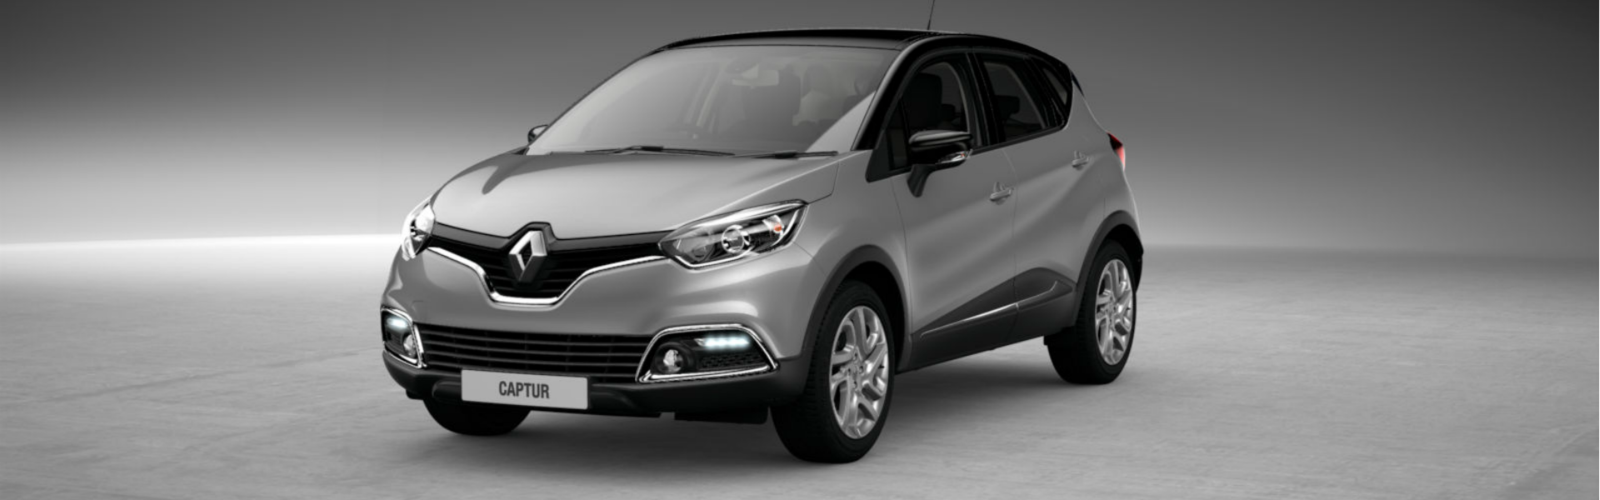 renault captur colours guide and paint prices carwow